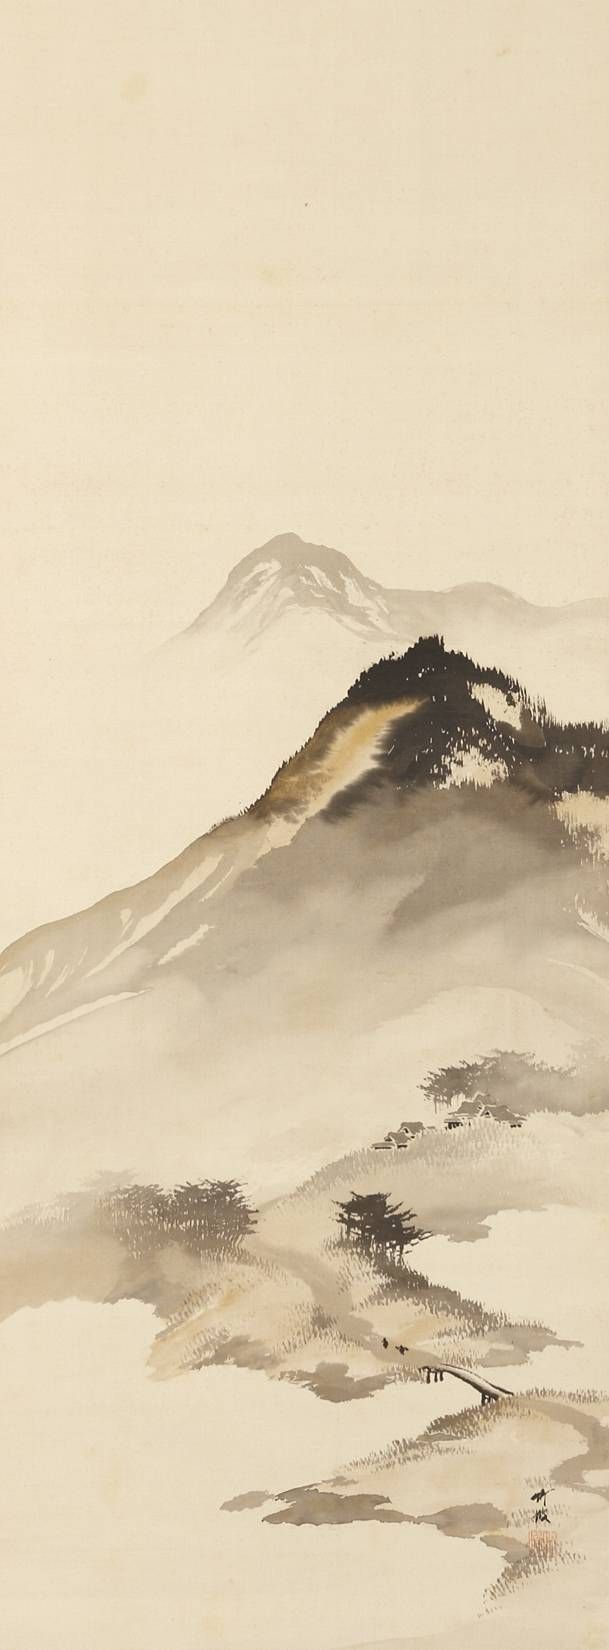 Mountain Landscape with Bridge by Odake Chikuha, 1878-1936 尾竹竹坡 Japan  chinese landscape